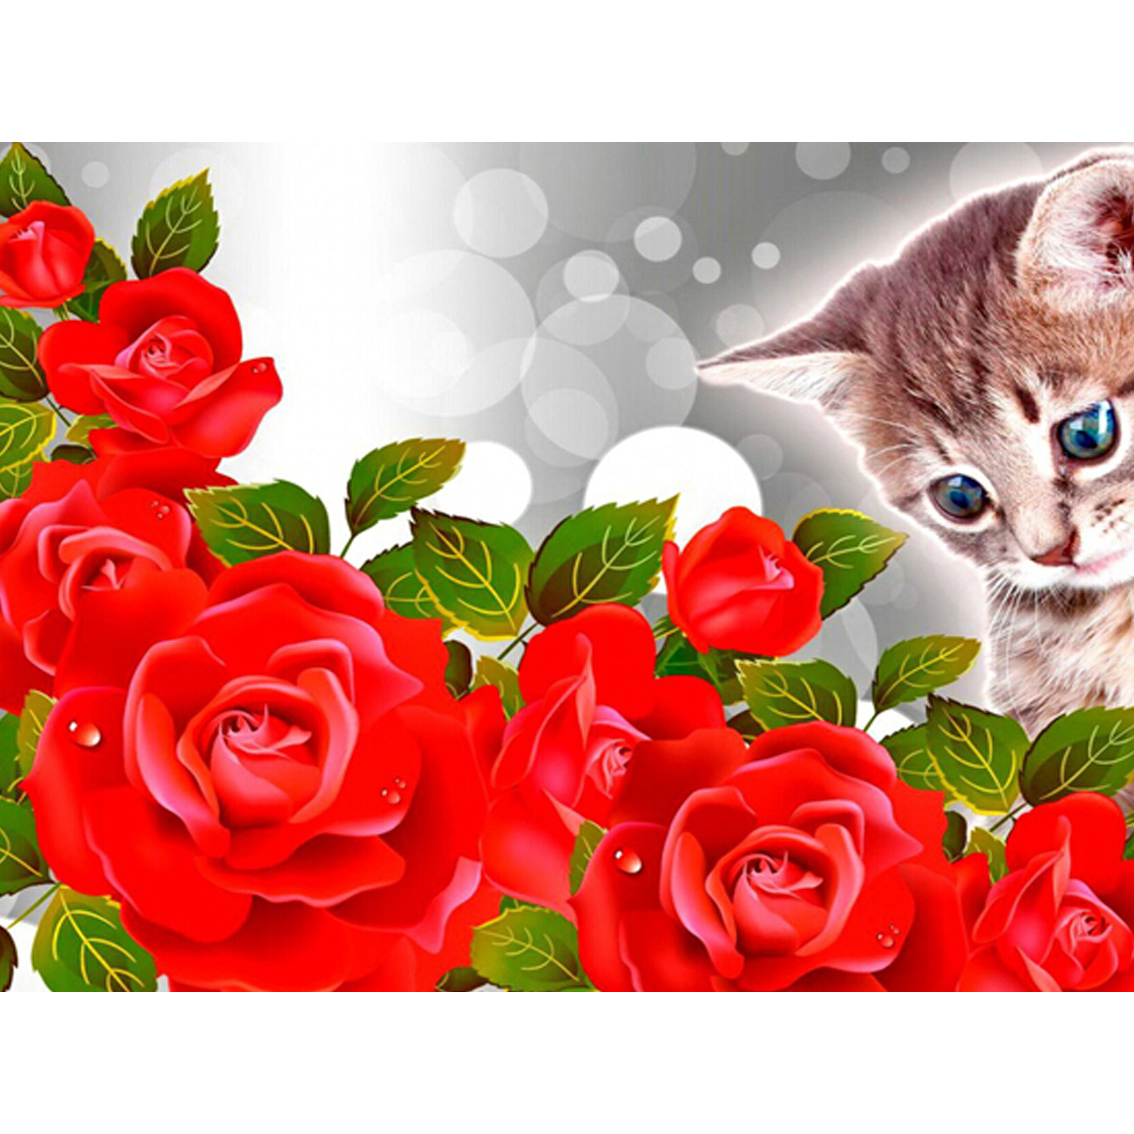 RZC-476 Western Style home decor 5D square Diy Diamond Painting Embroidery Flowers and cats living room sticker 40X30CM